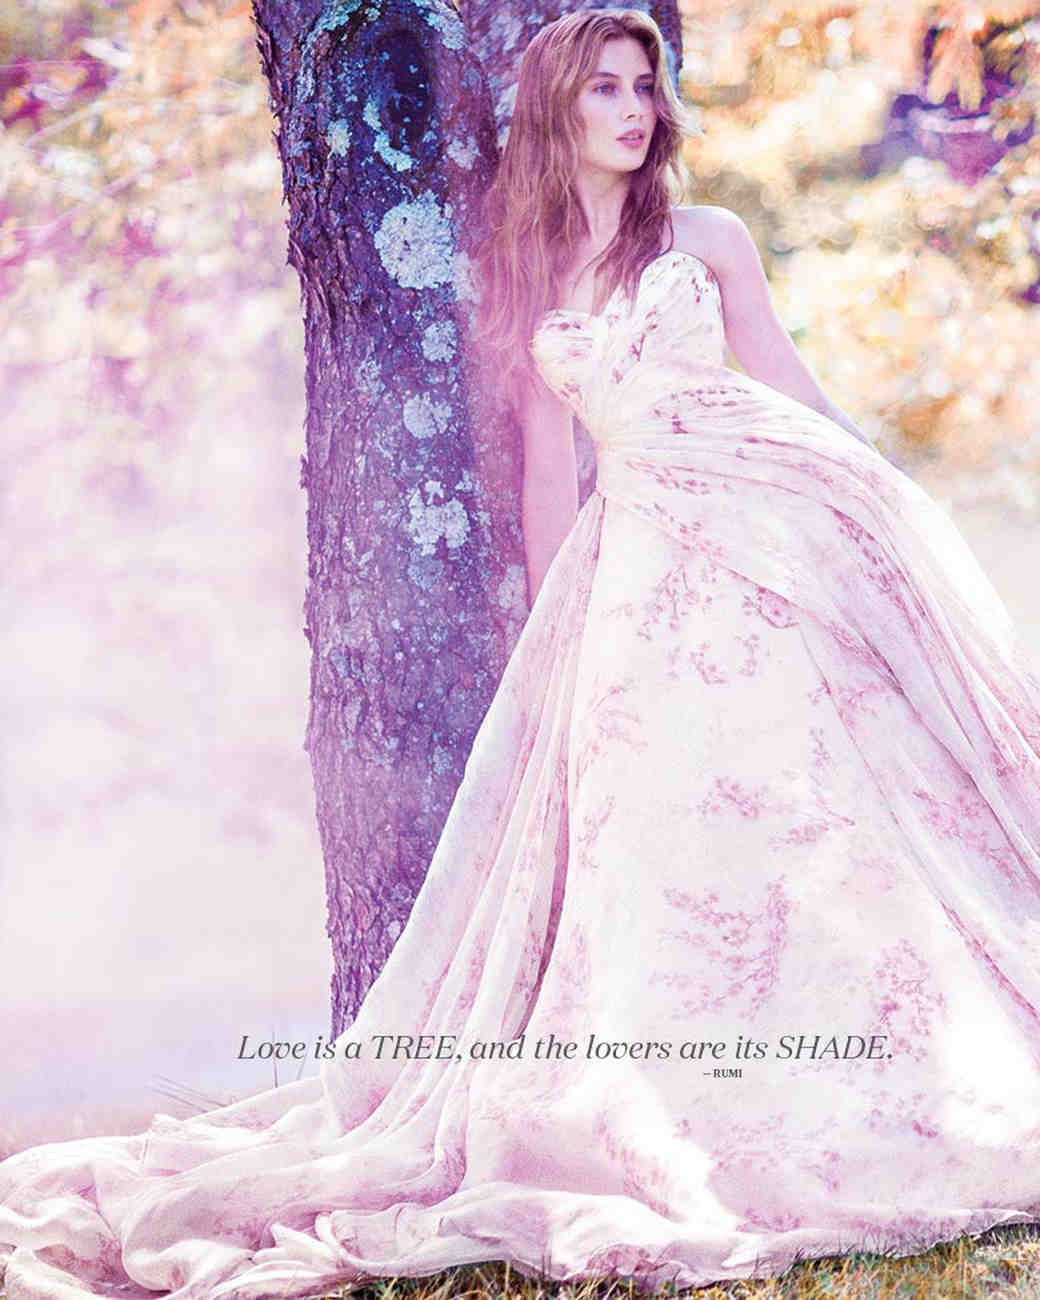 winter-fashion-poetic-quotes-rumi-love-is-a-tree-0216.jpg